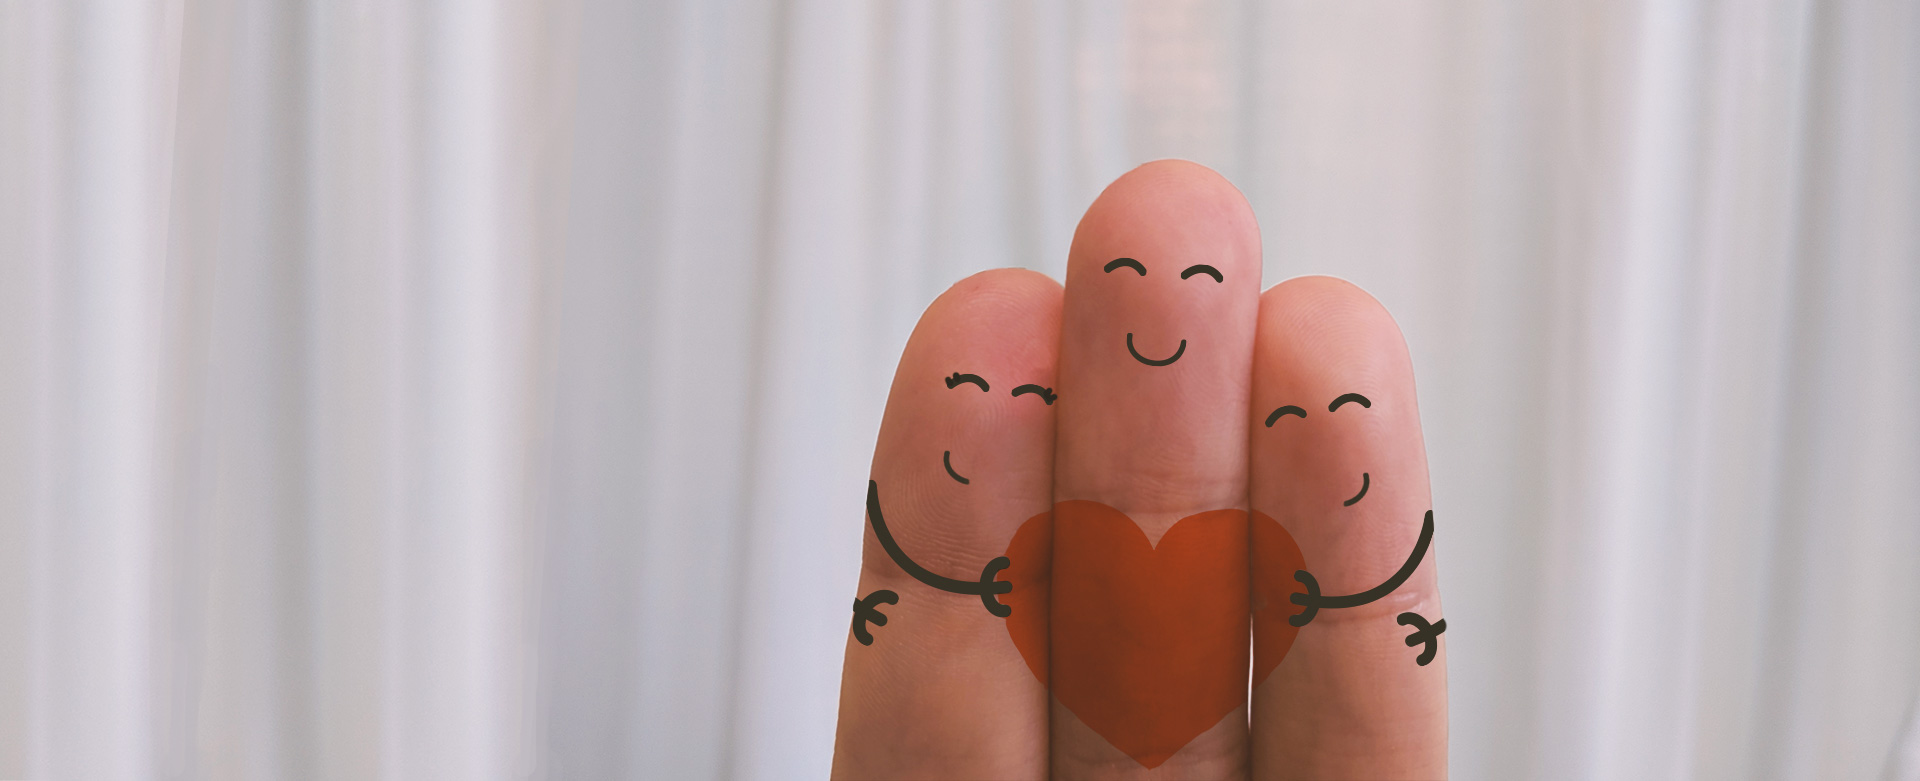 Three fingers hugging with heart